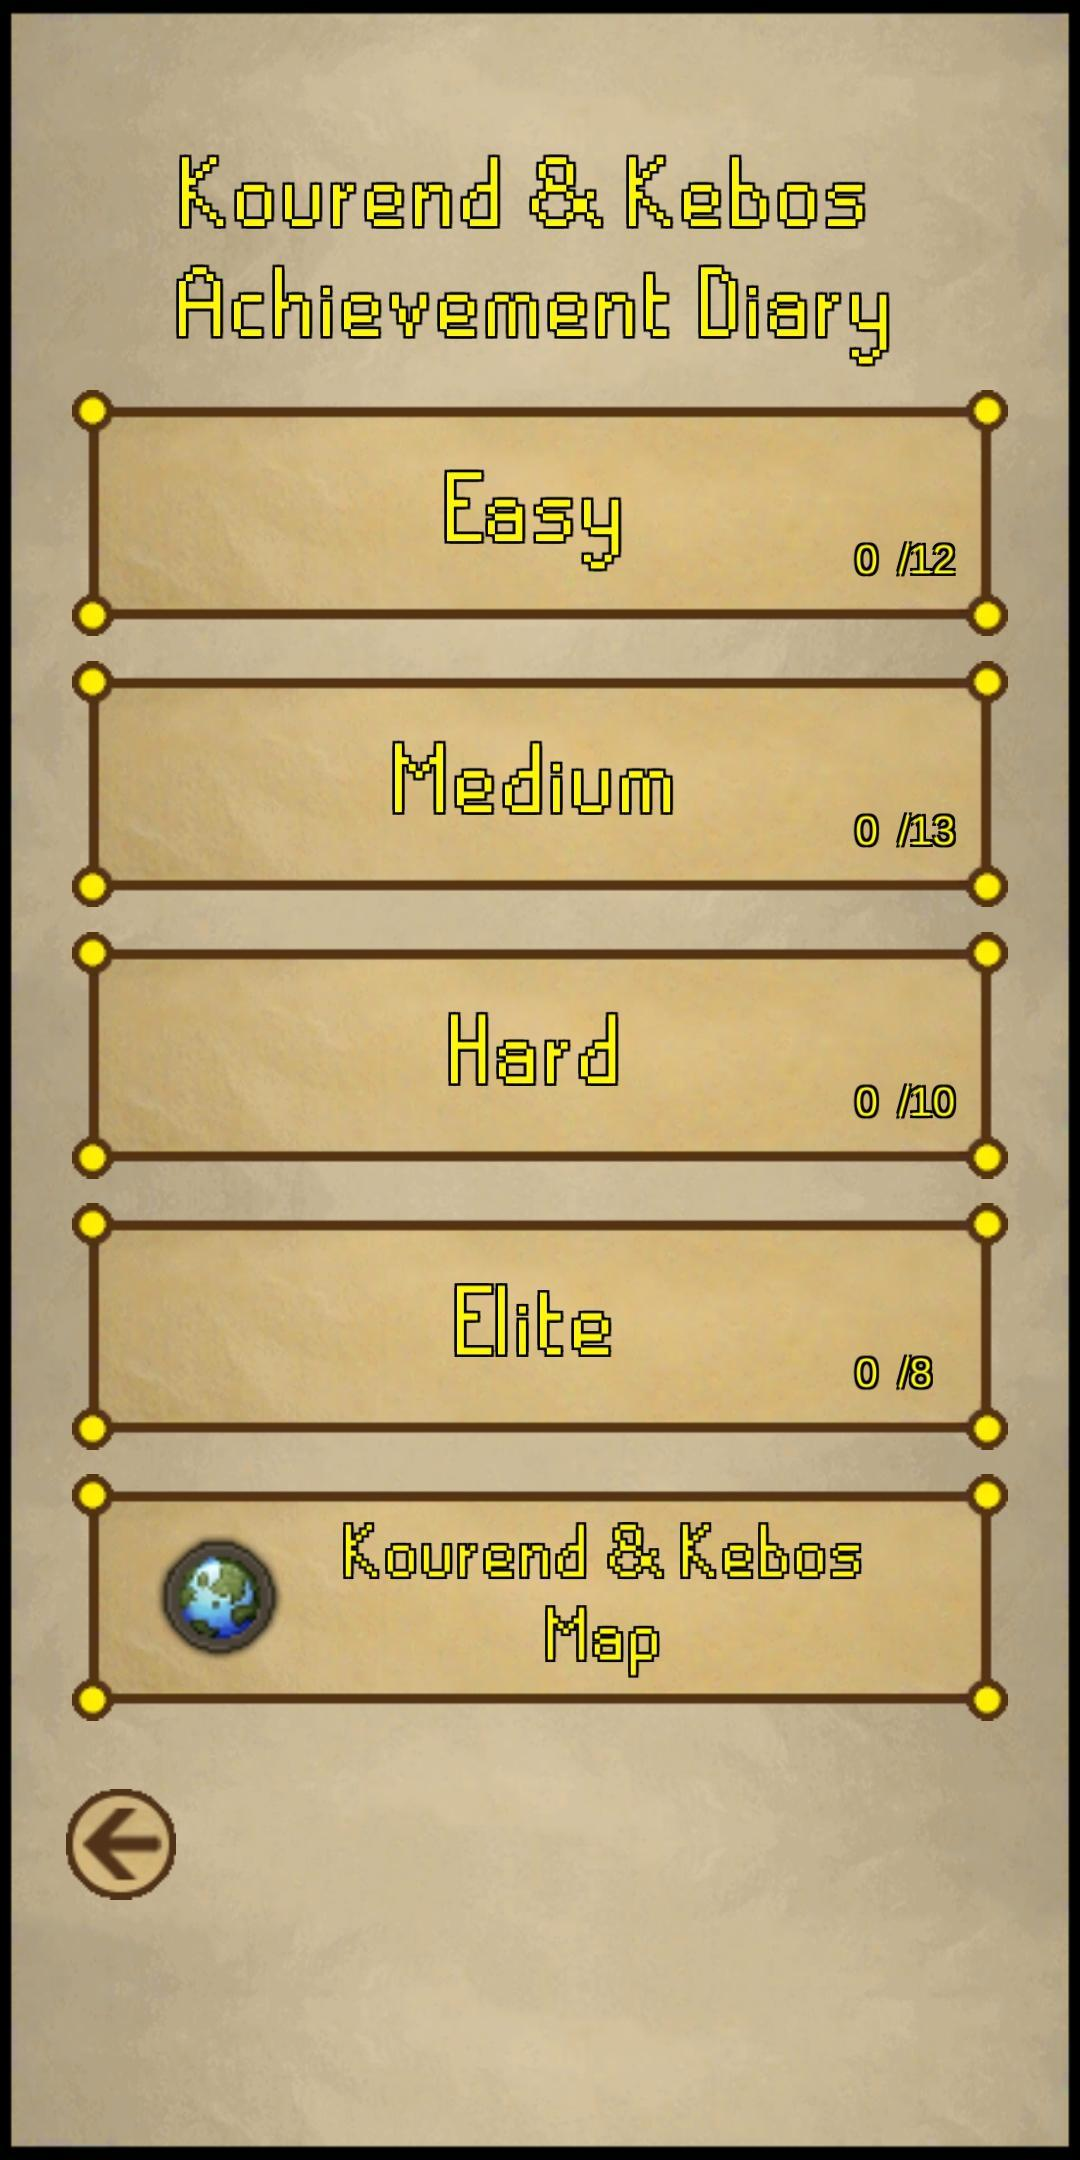 Osrs Achievement Diary Guide For Android Apk Download The kourend & kebos achievements is a set of achievements relating to kourend, kebos, and their surrounding areas, released on 10 january 2019. osrs achievement diary guide for